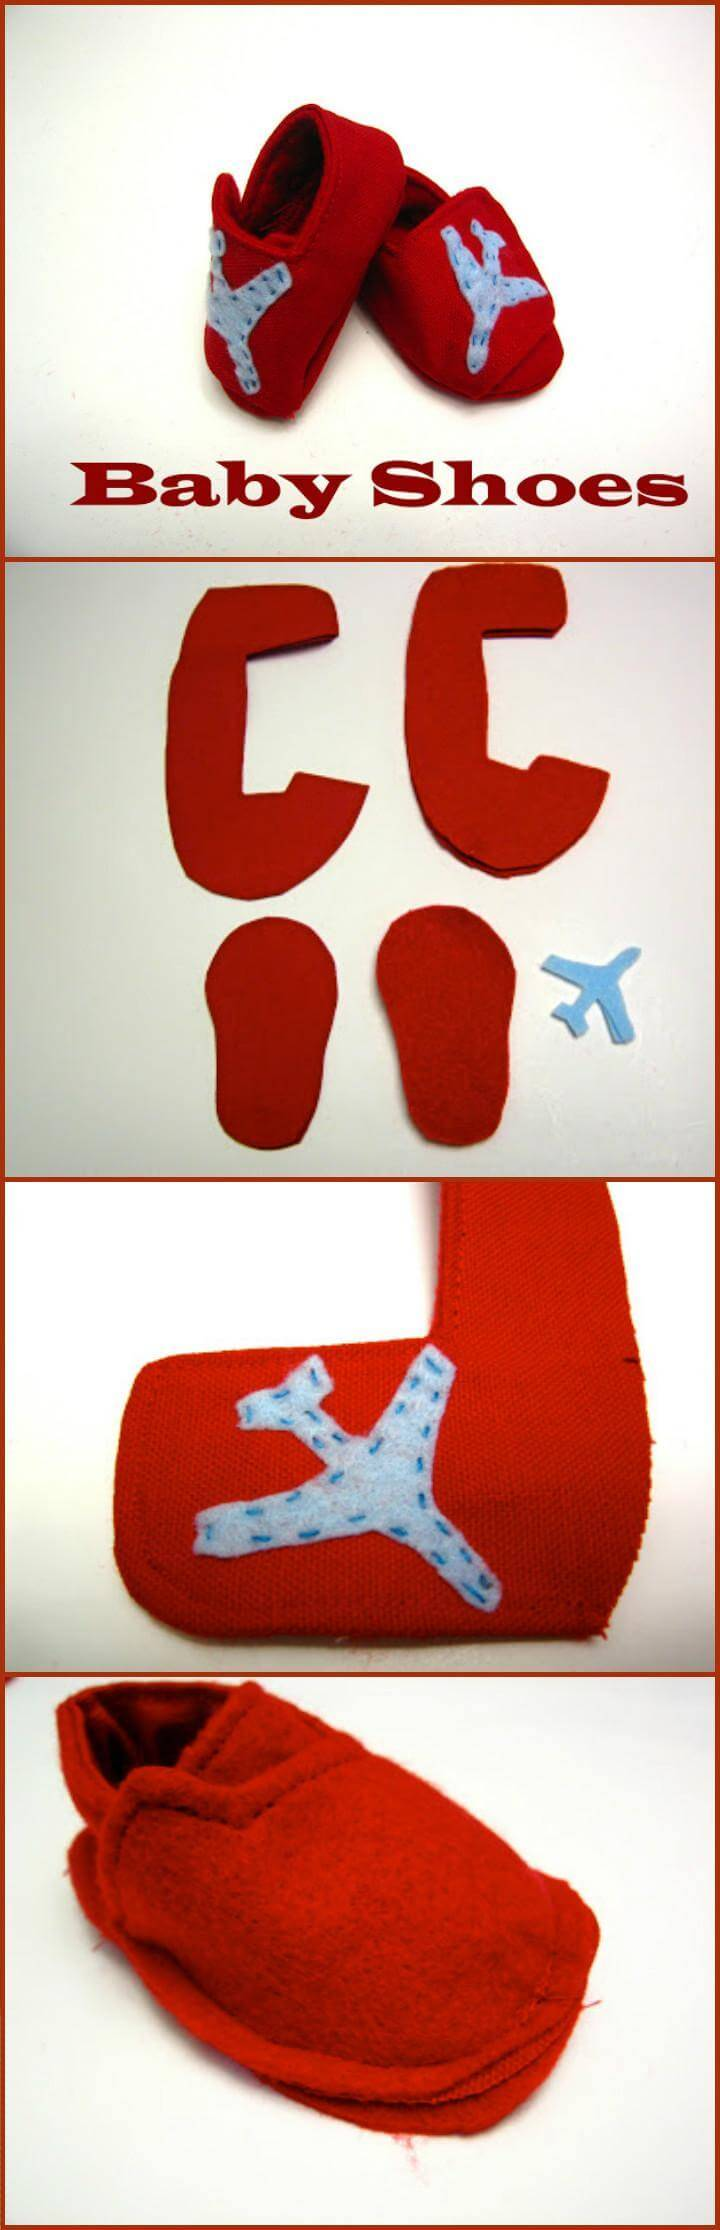 handmade red baby shoes with plane embellishment